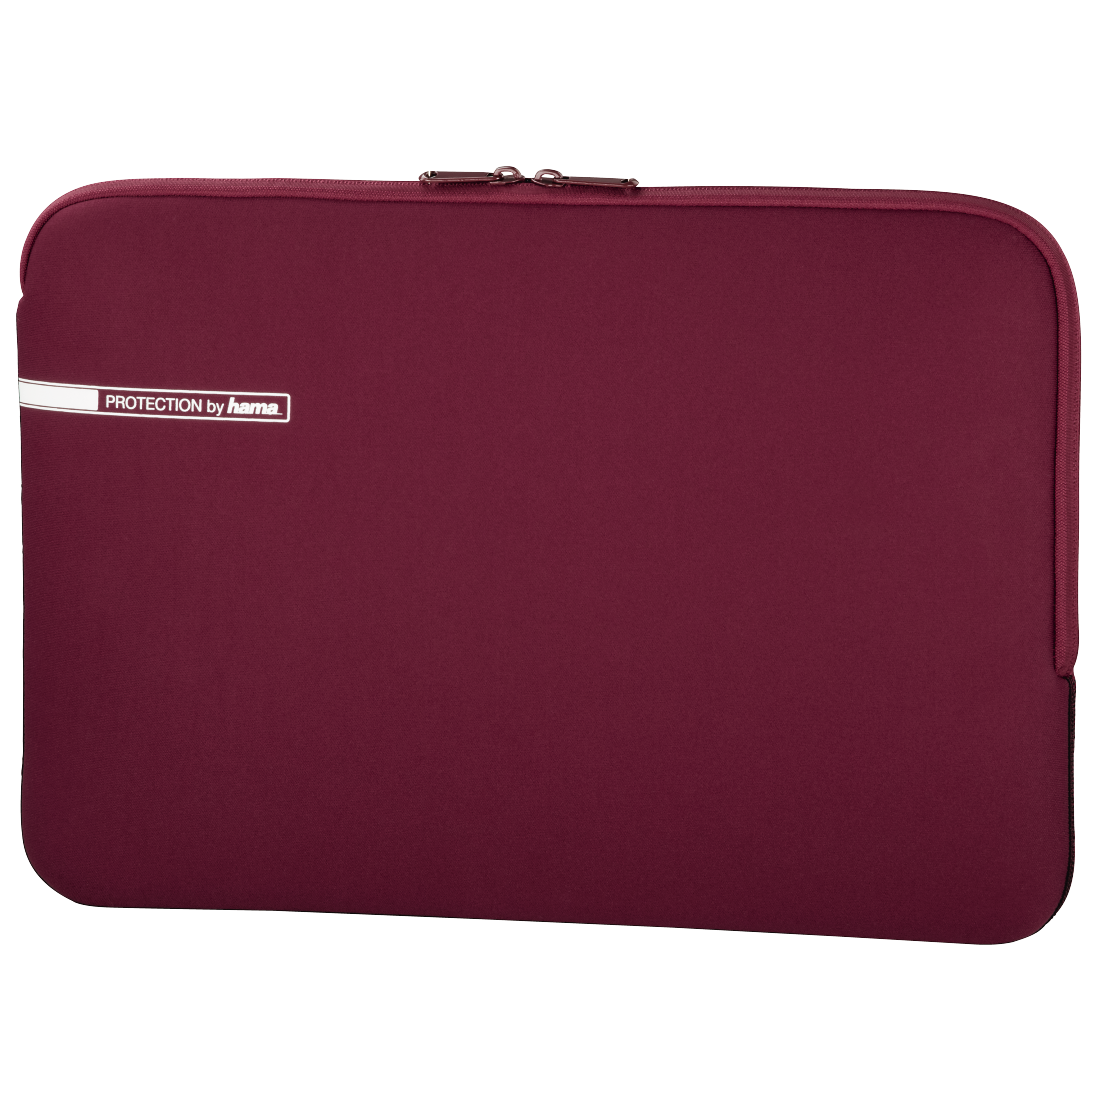 abx High-Res Image - Hama, Neoprene Style Notebook Sleeve, up to 34 cm (13.3), burgundy